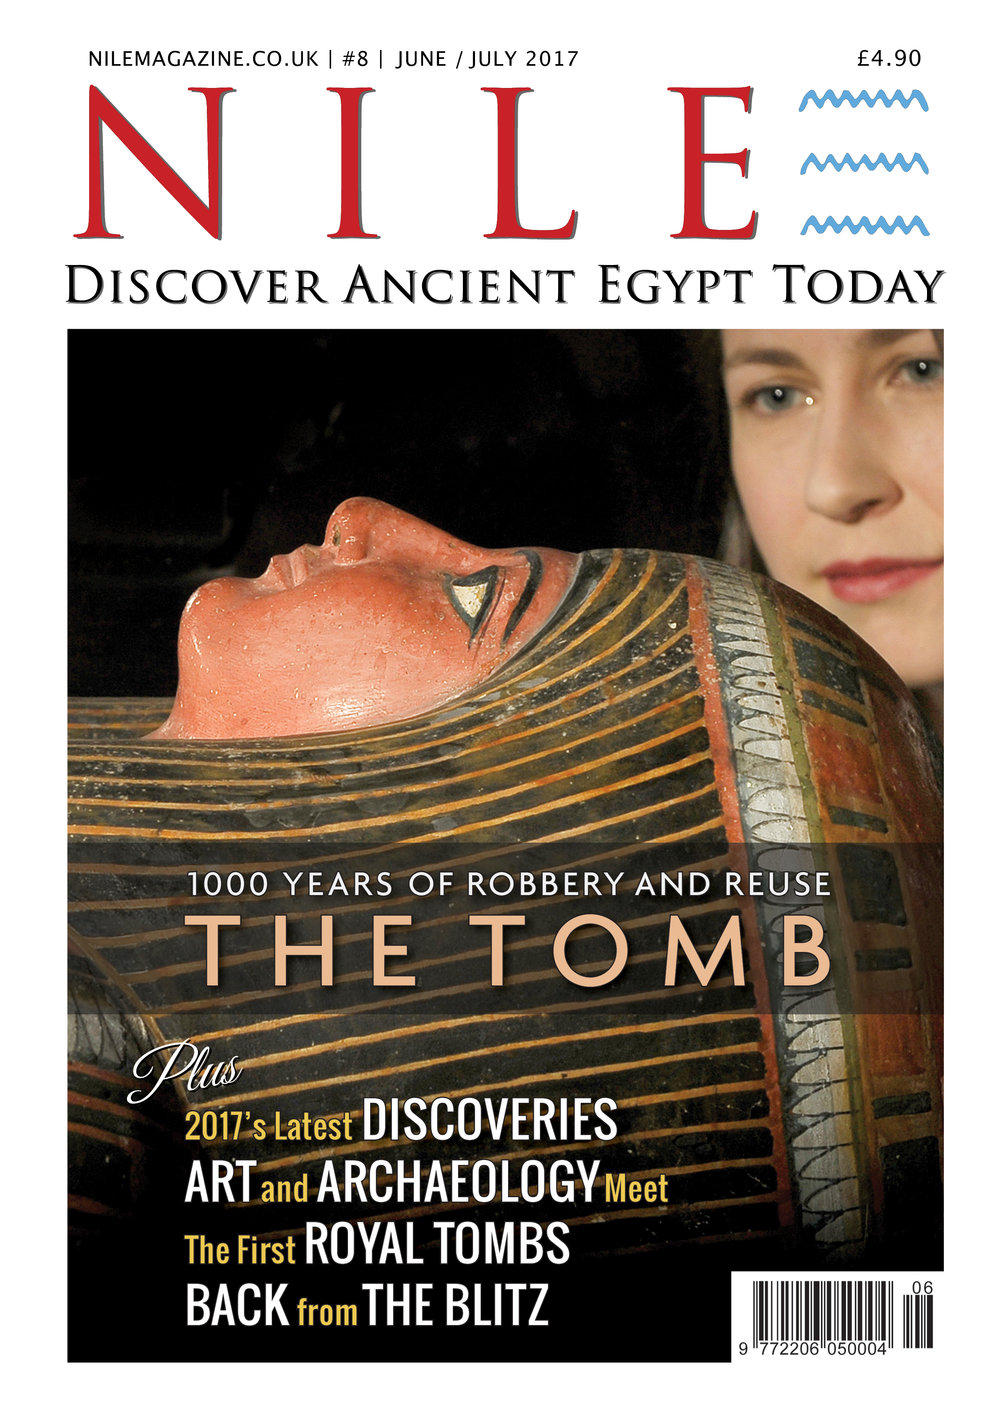 Satisfy your passion for ancient Egypt. NILE Magazine June-July 2017 is out now. Inside: - The Tomb-1000 years of robbery and reuse. - Egypt's first ever funerary garden discovered. - World Museum's new ancient Egypt gallery. - Art and Archaeology meet: the two worlds of Susan Osgood. - The Royal Tombs of Ancient Egypt. - Aswan's powerful governors. - On This Day in Egyptology history. - Plus much more. Click on the cover to subscribe.